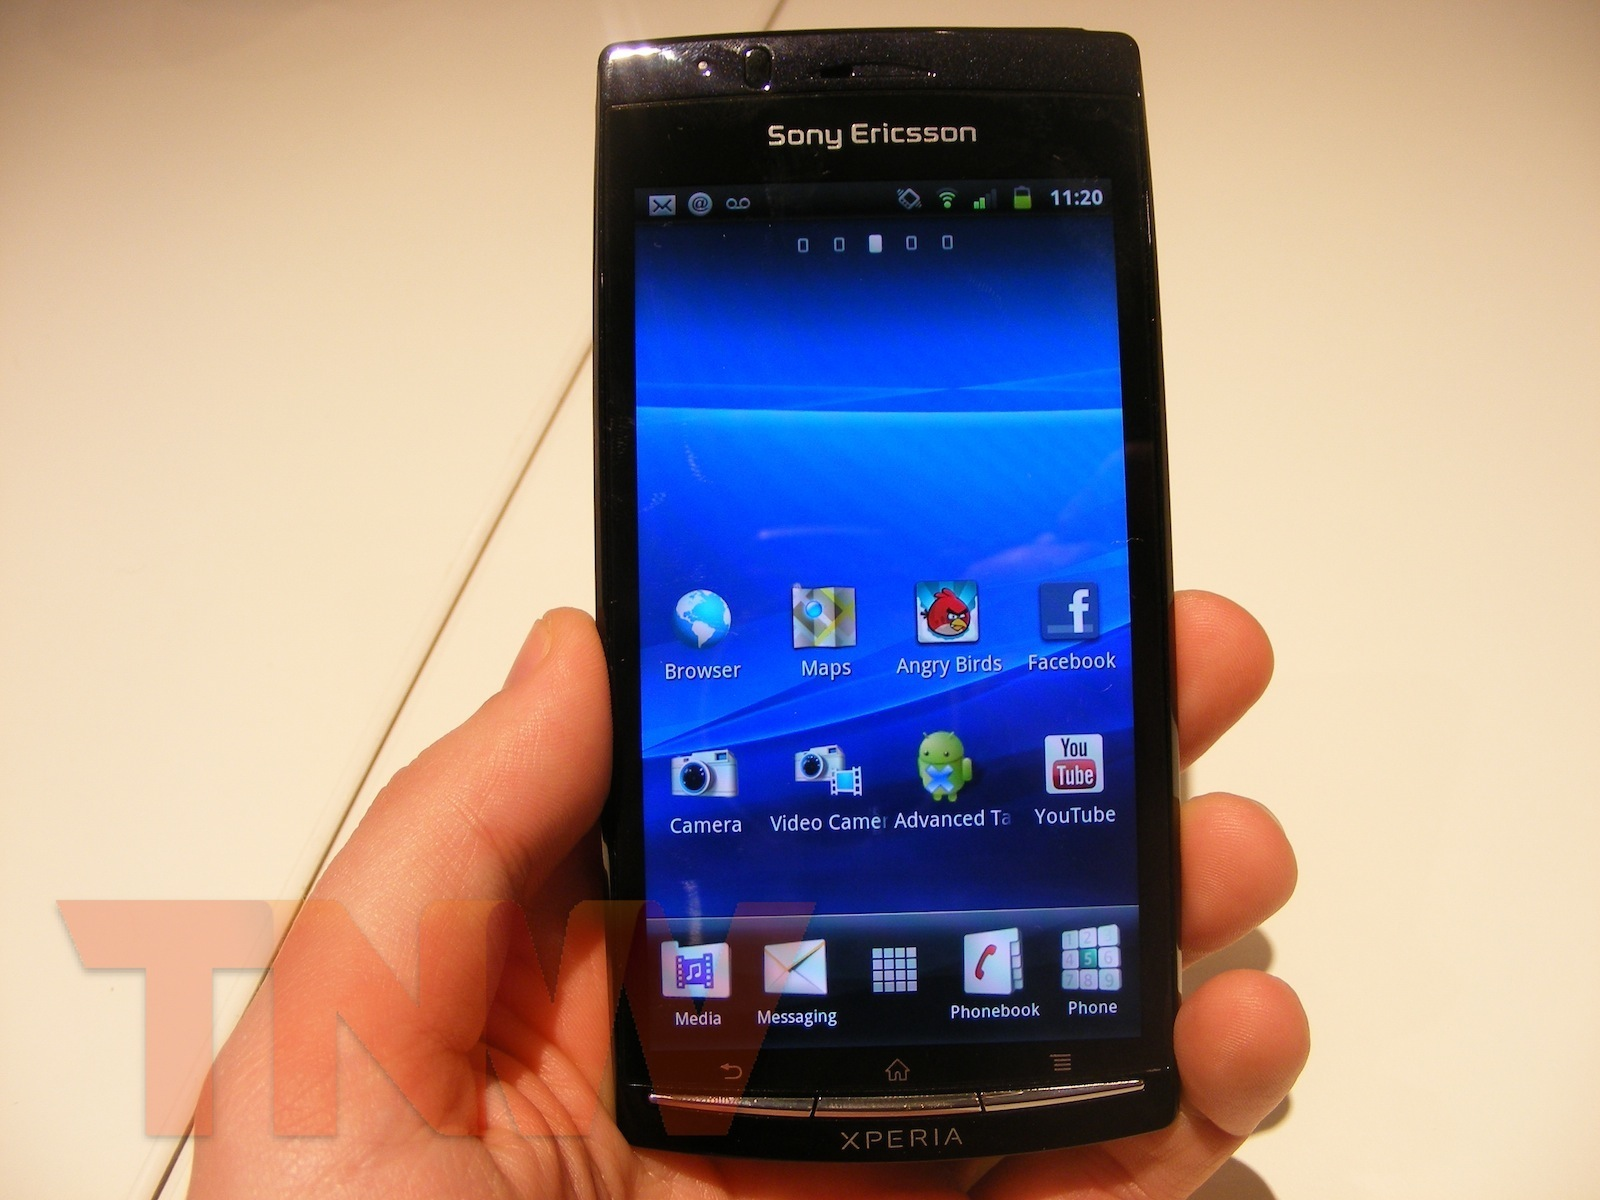 TNW First Look: Sony Ericsson Xperia Arc